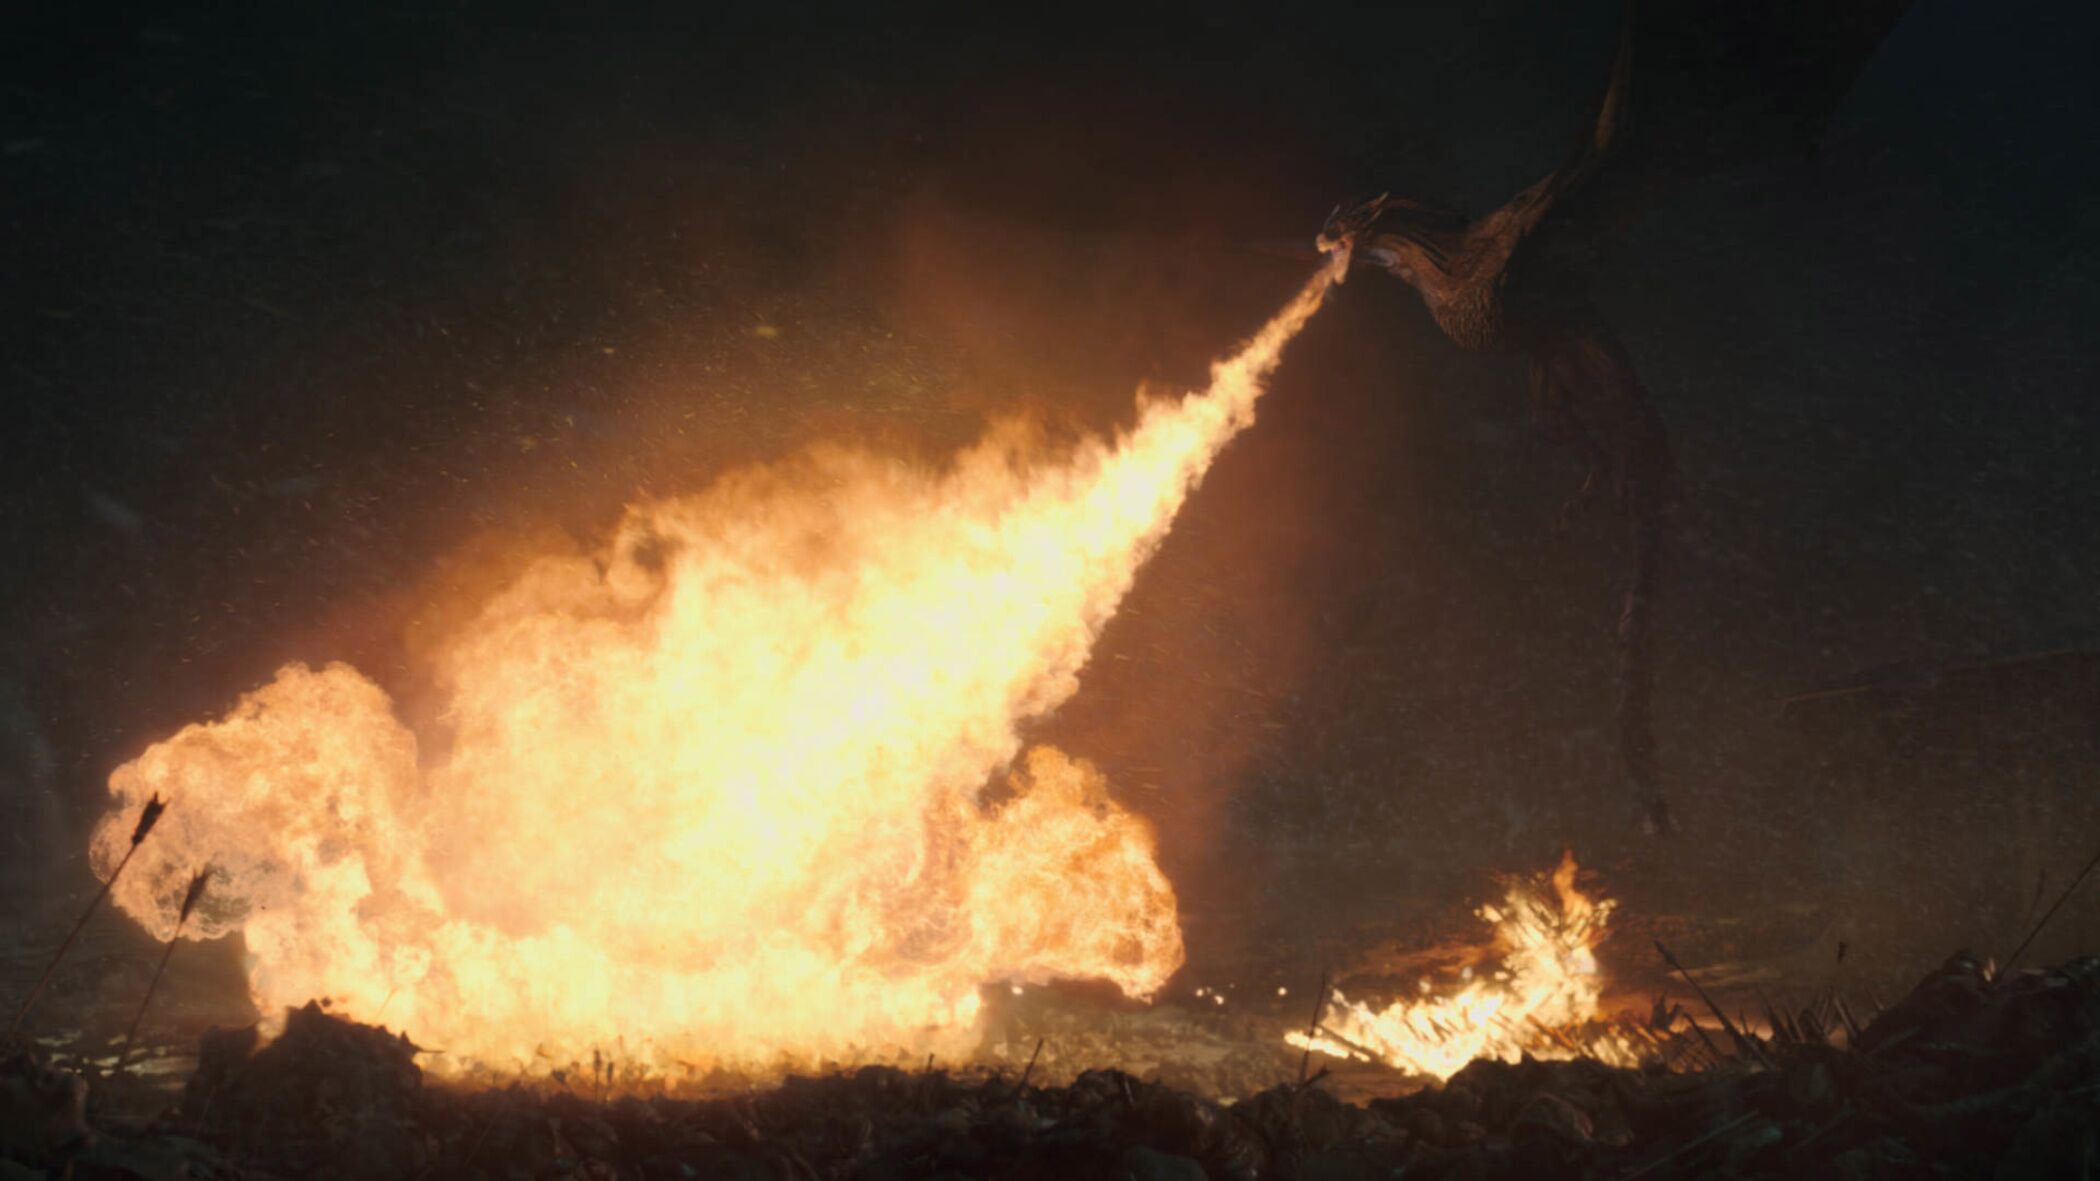 Light stories: Game of Thrones